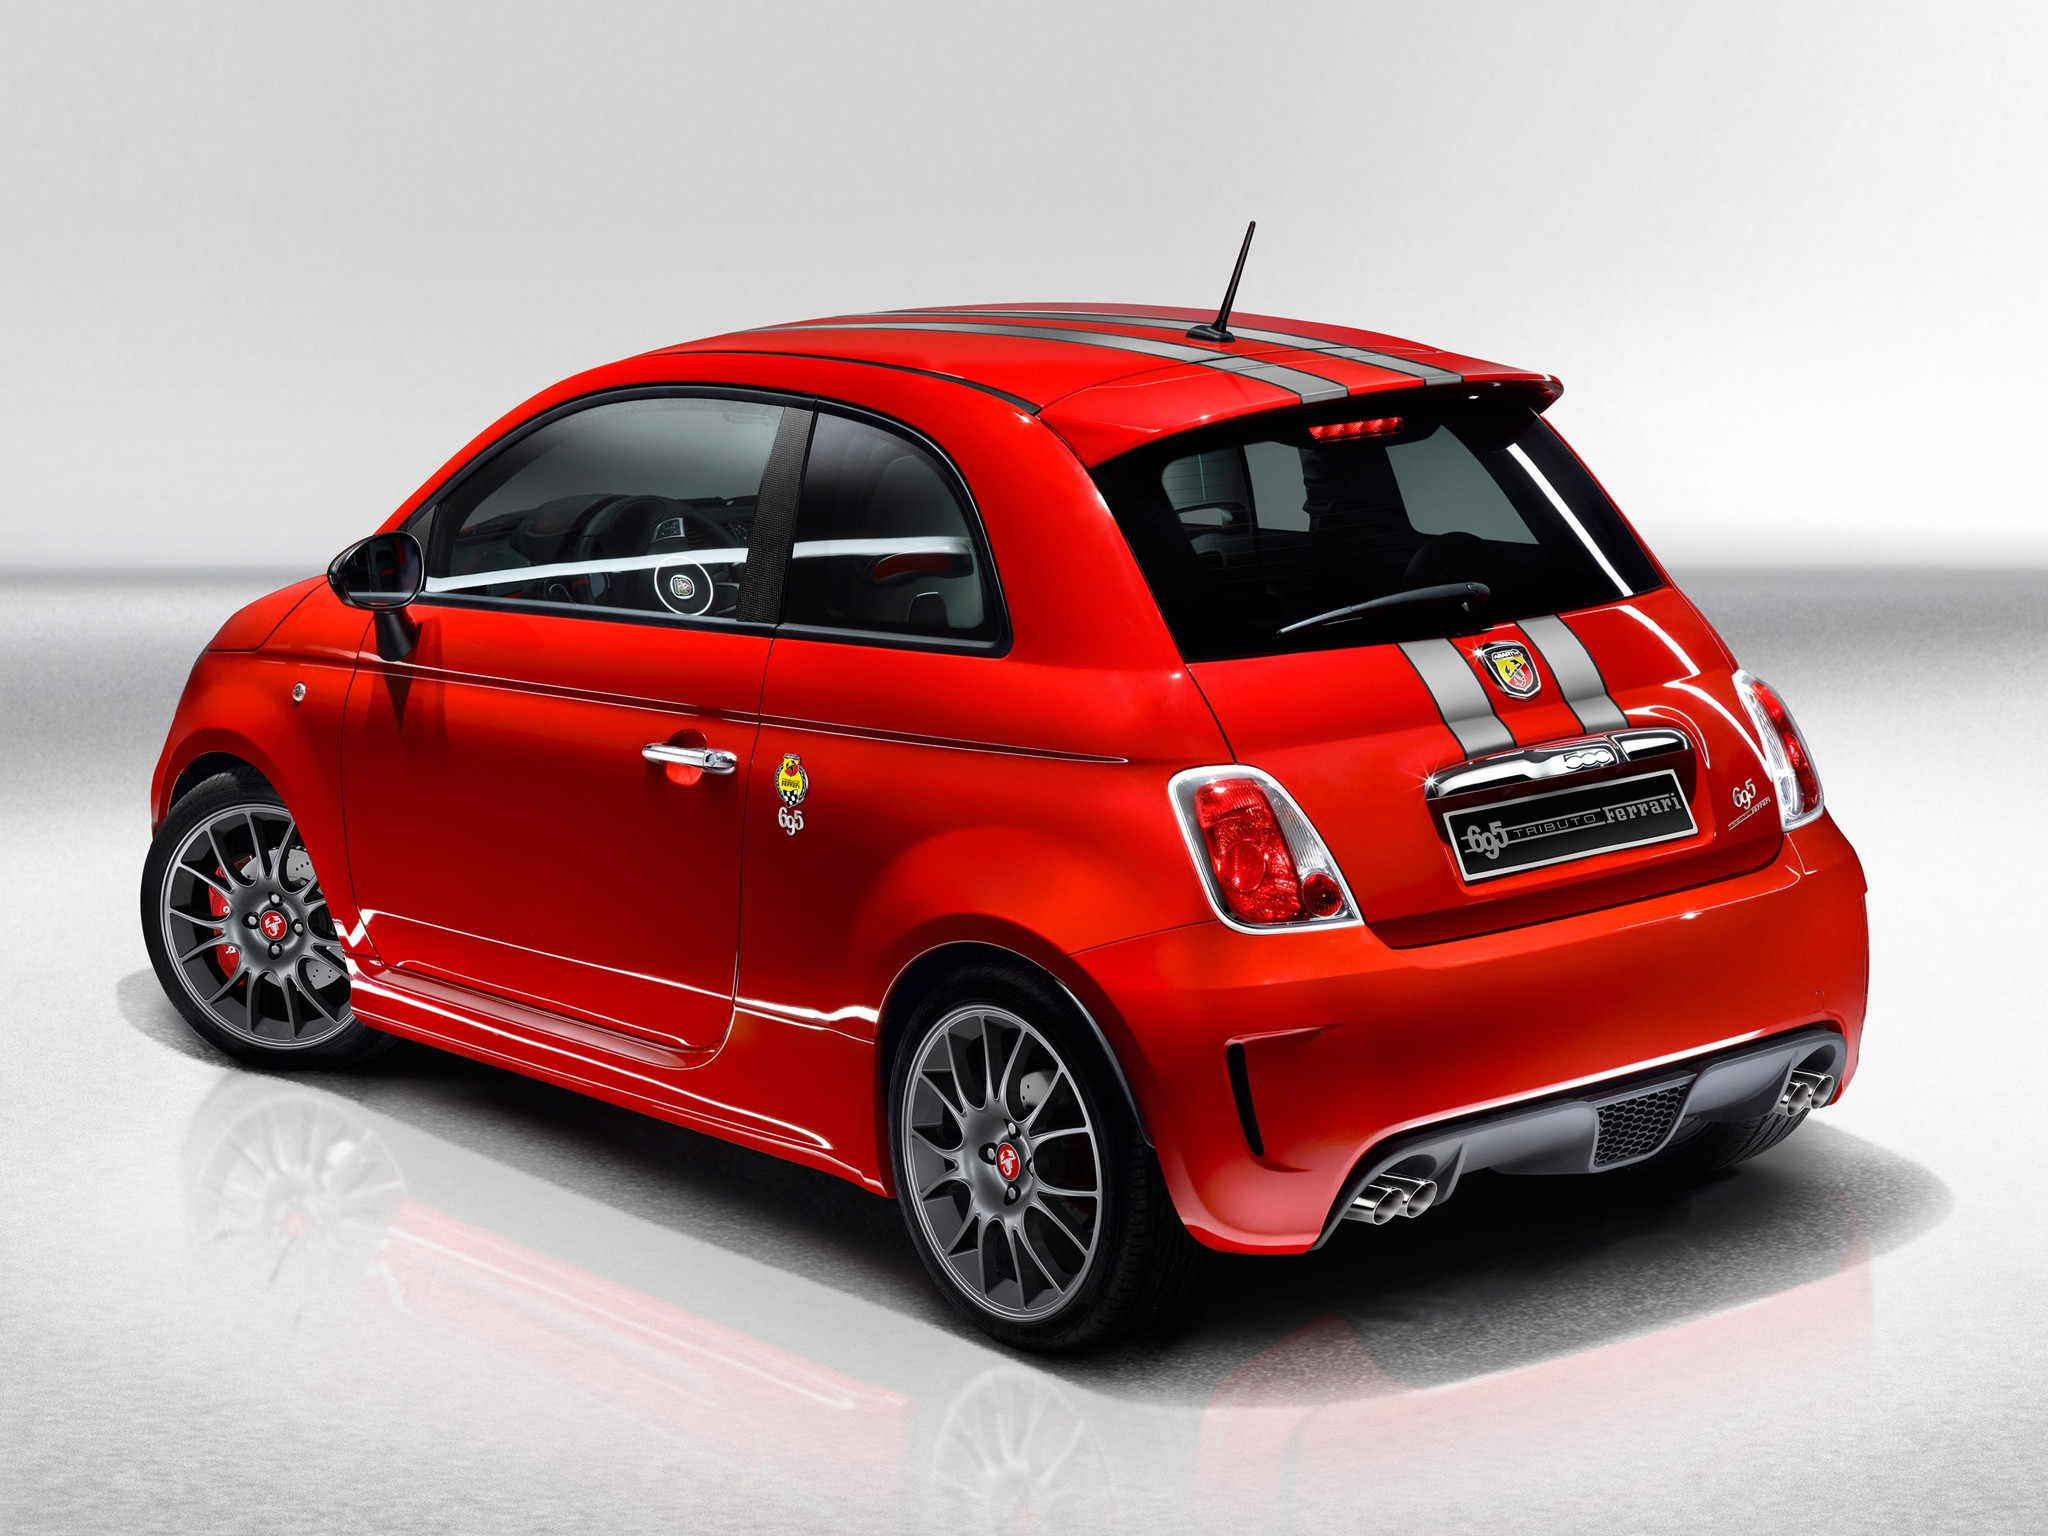 Fiat Abarth Tributo Ferrari on 2012 Fiat 500 Abarth Engine